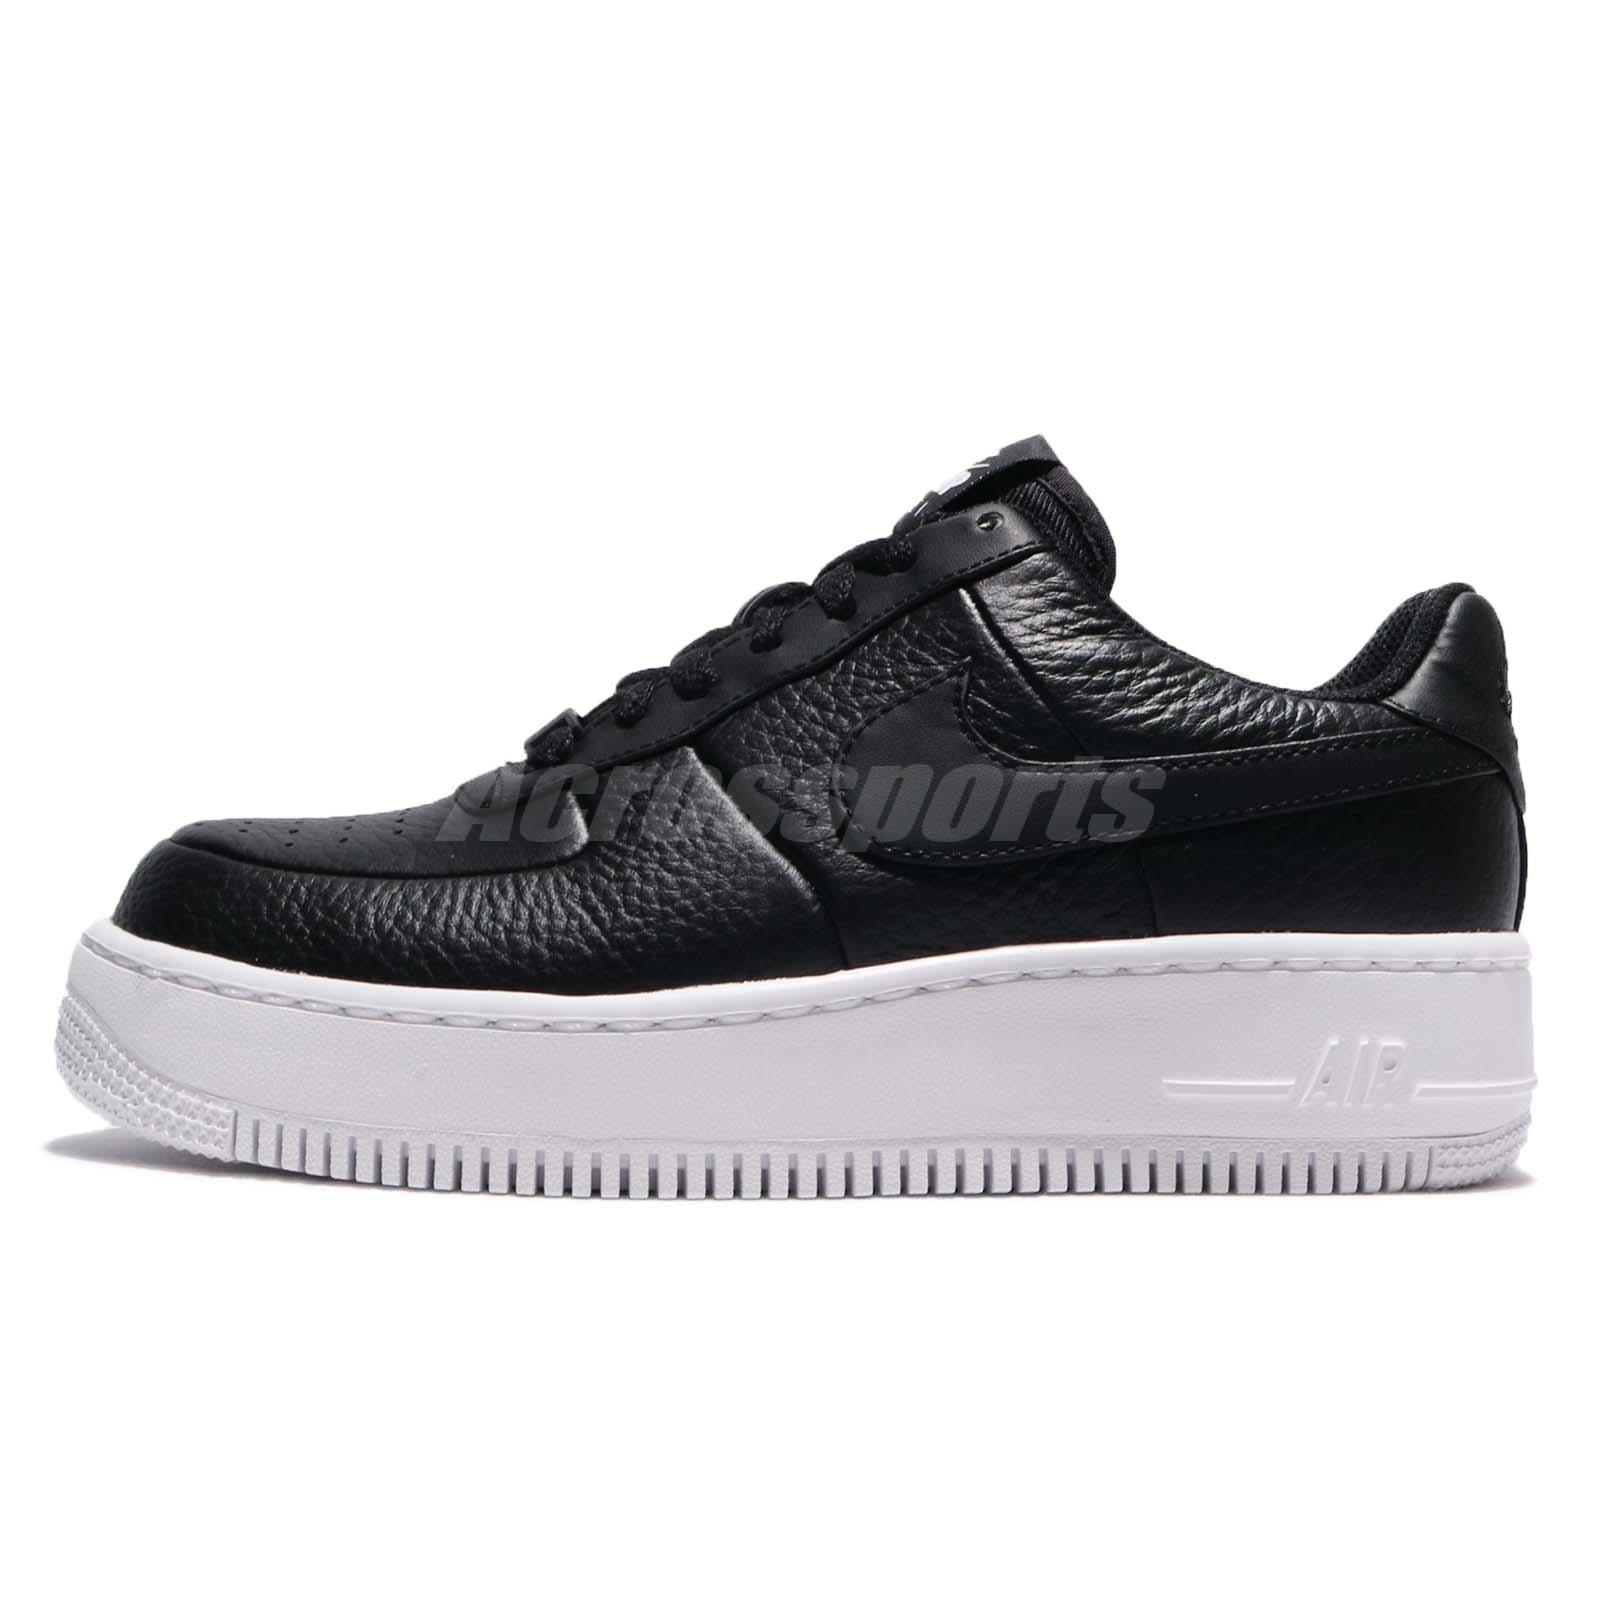 nike air force 1 low black patent leather nz